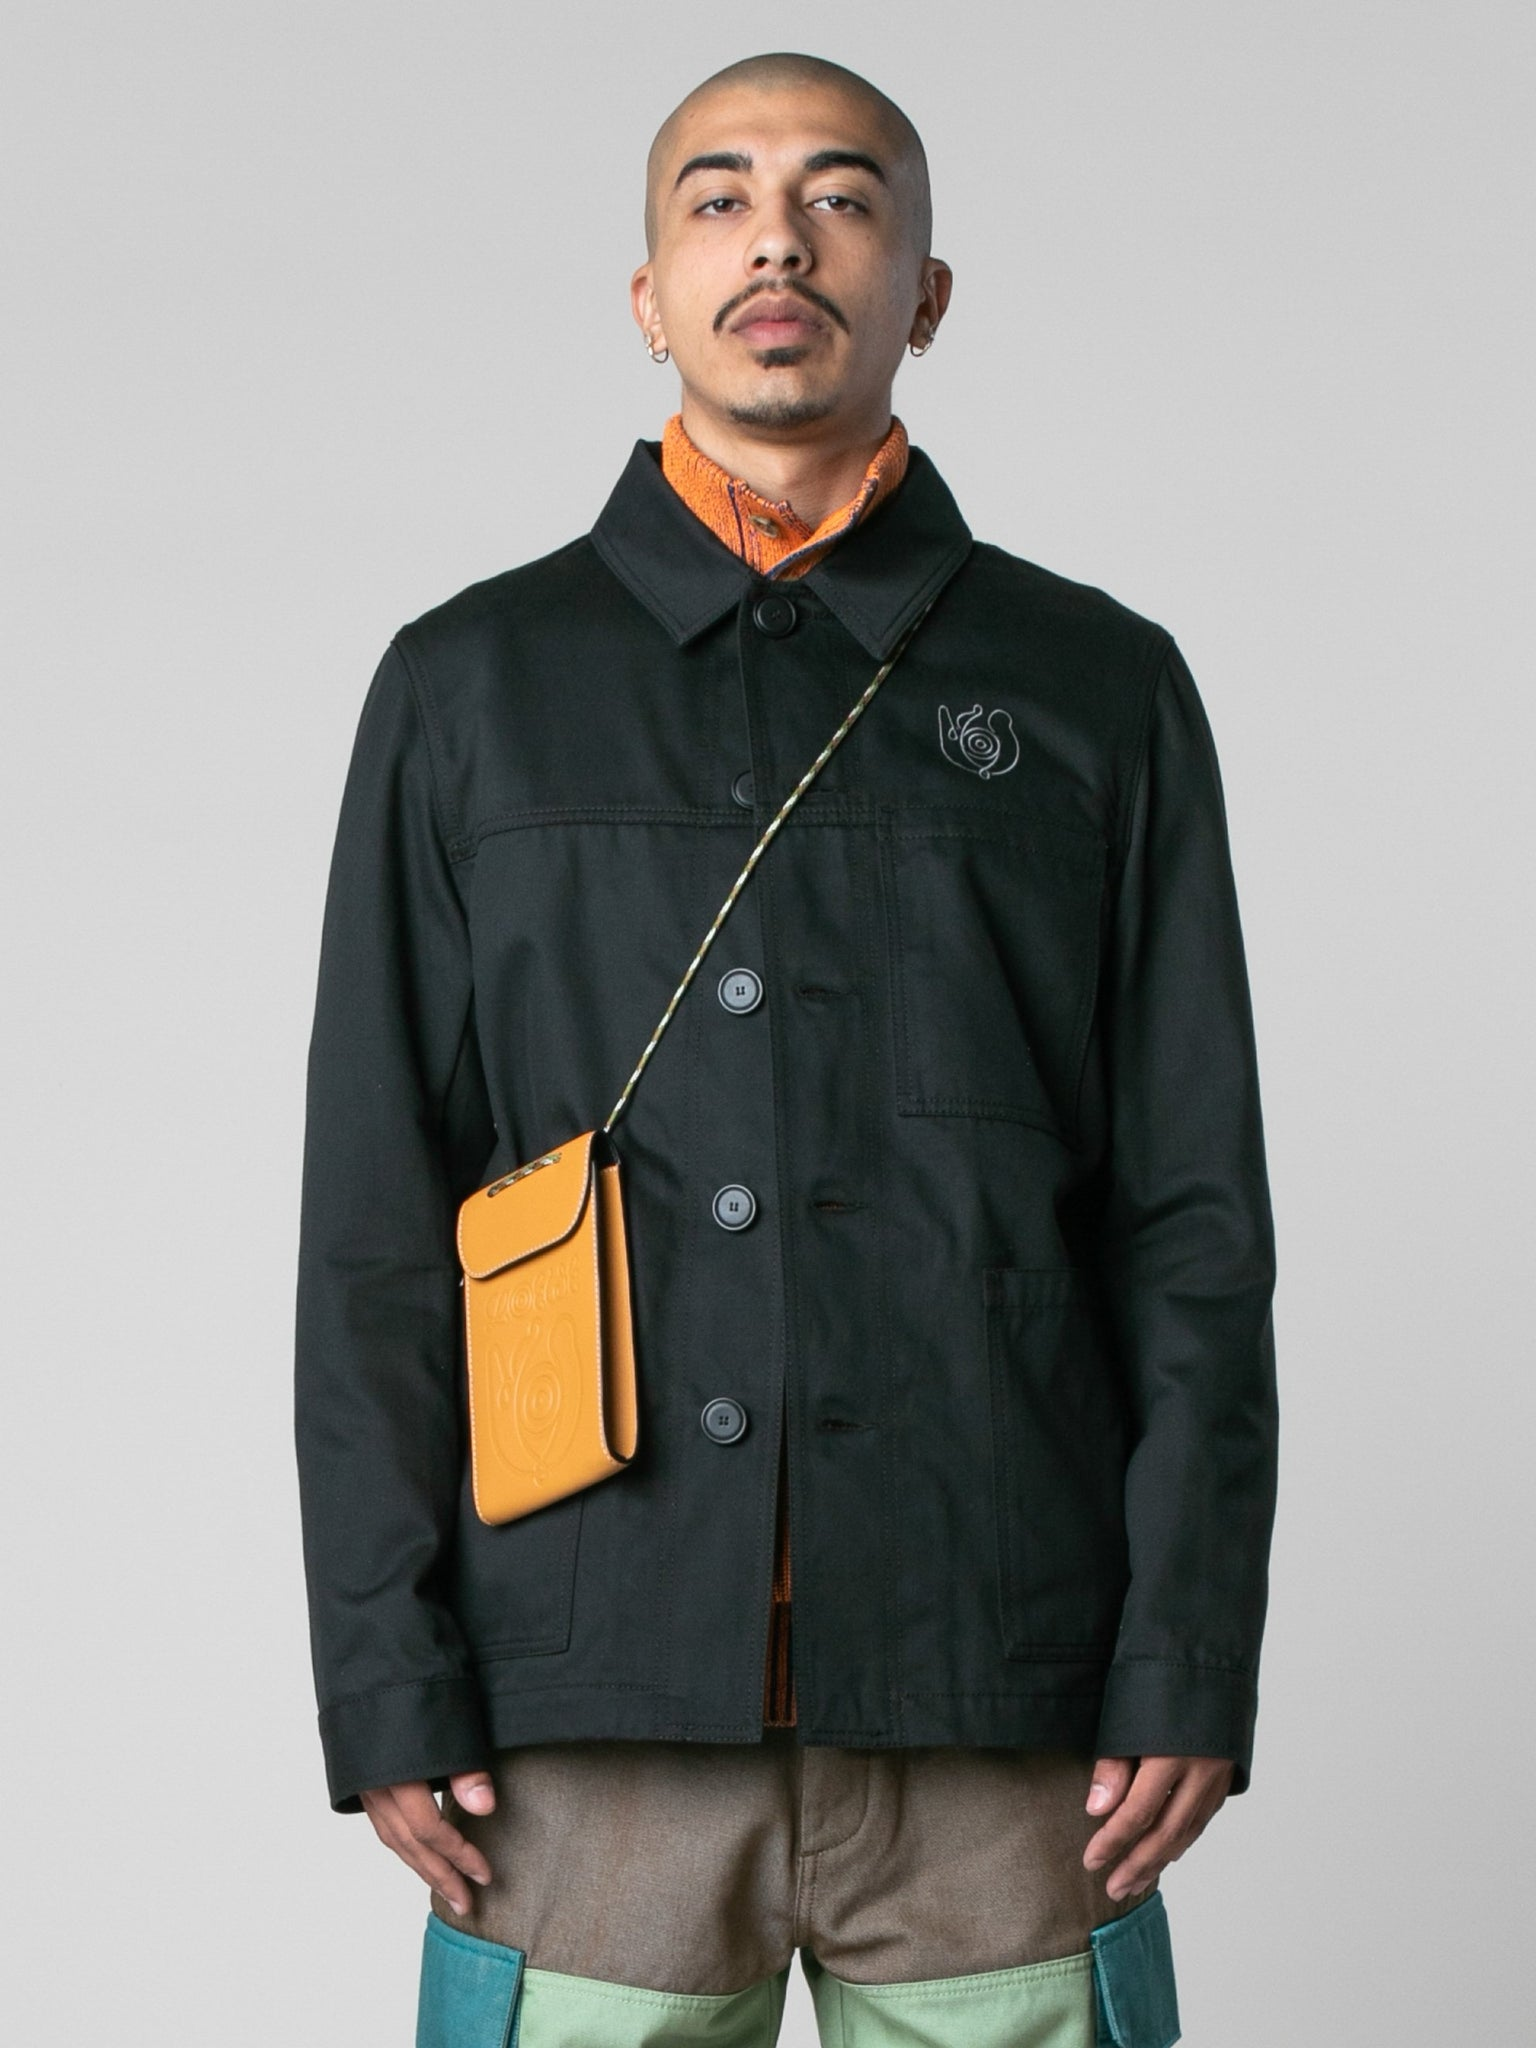 eln-workwear-jackets